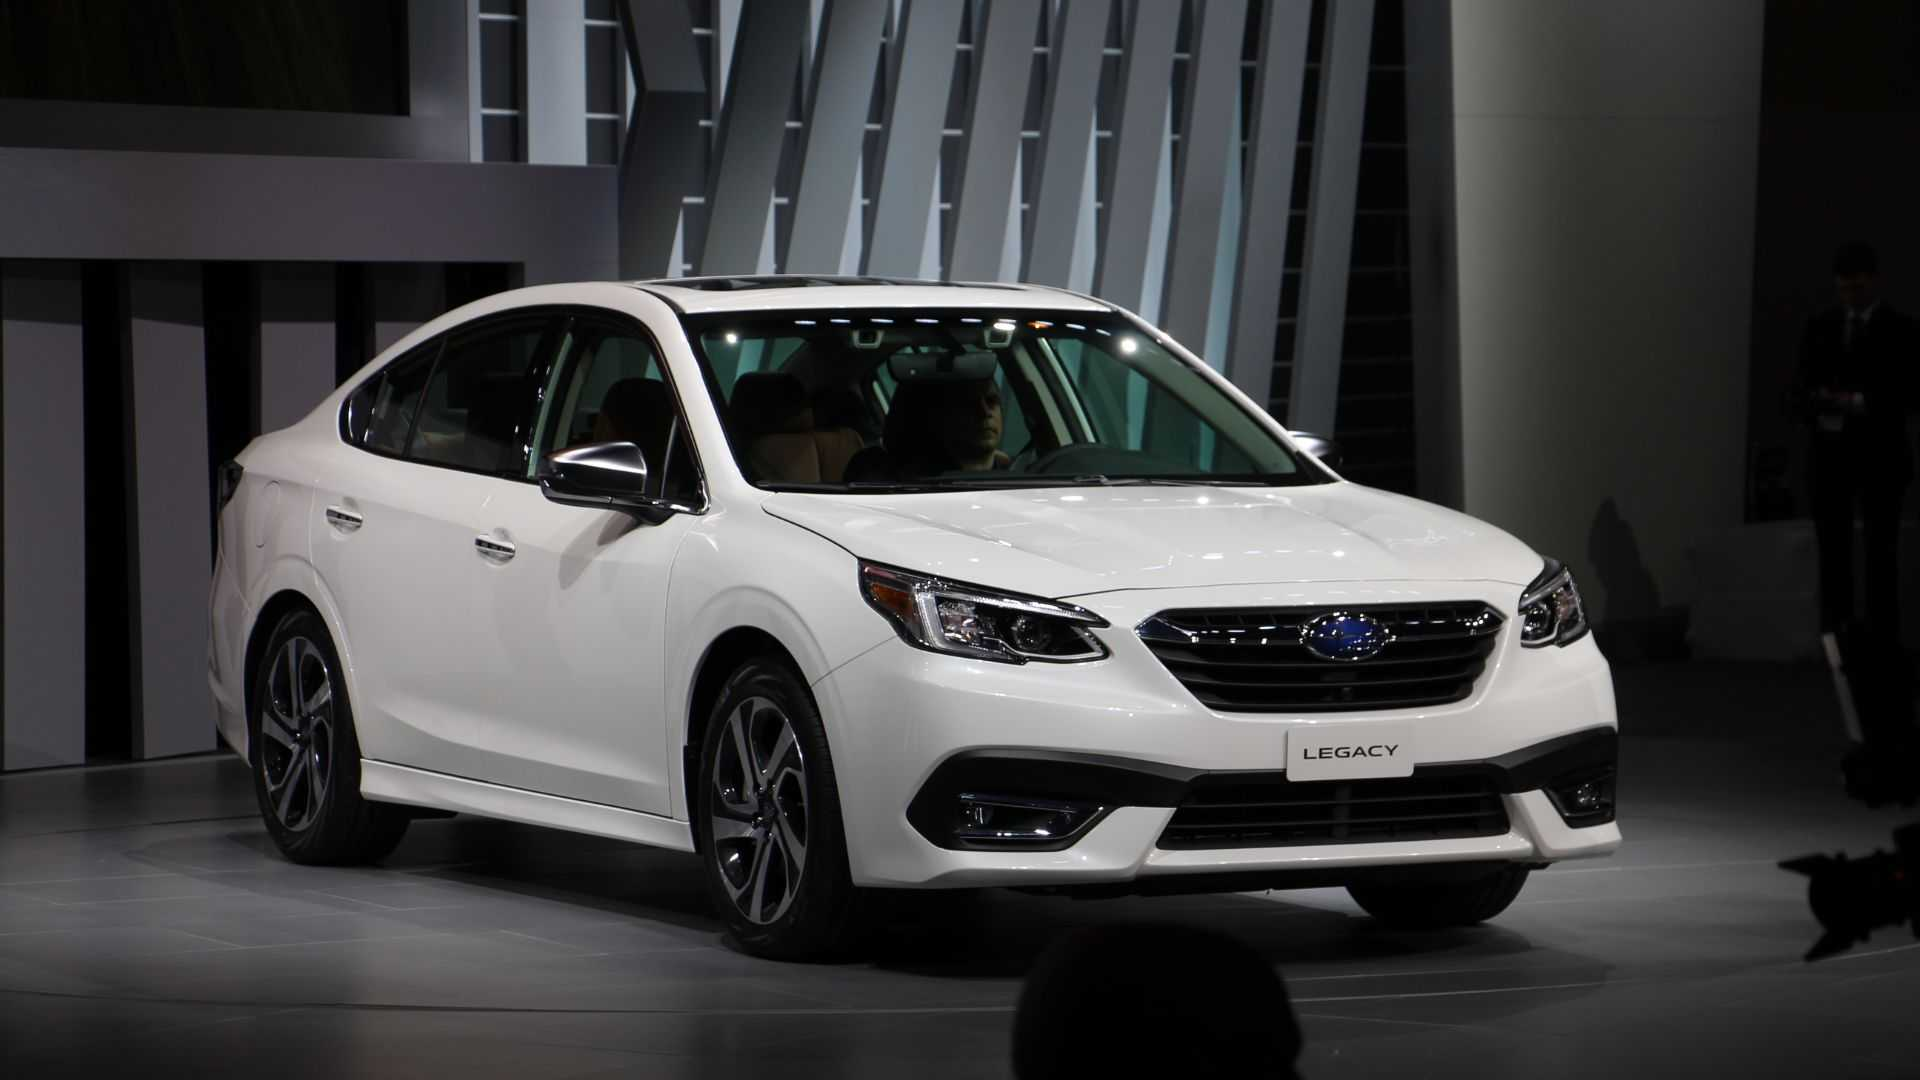 85 Best 2020 Subaru Legacy Price and Review